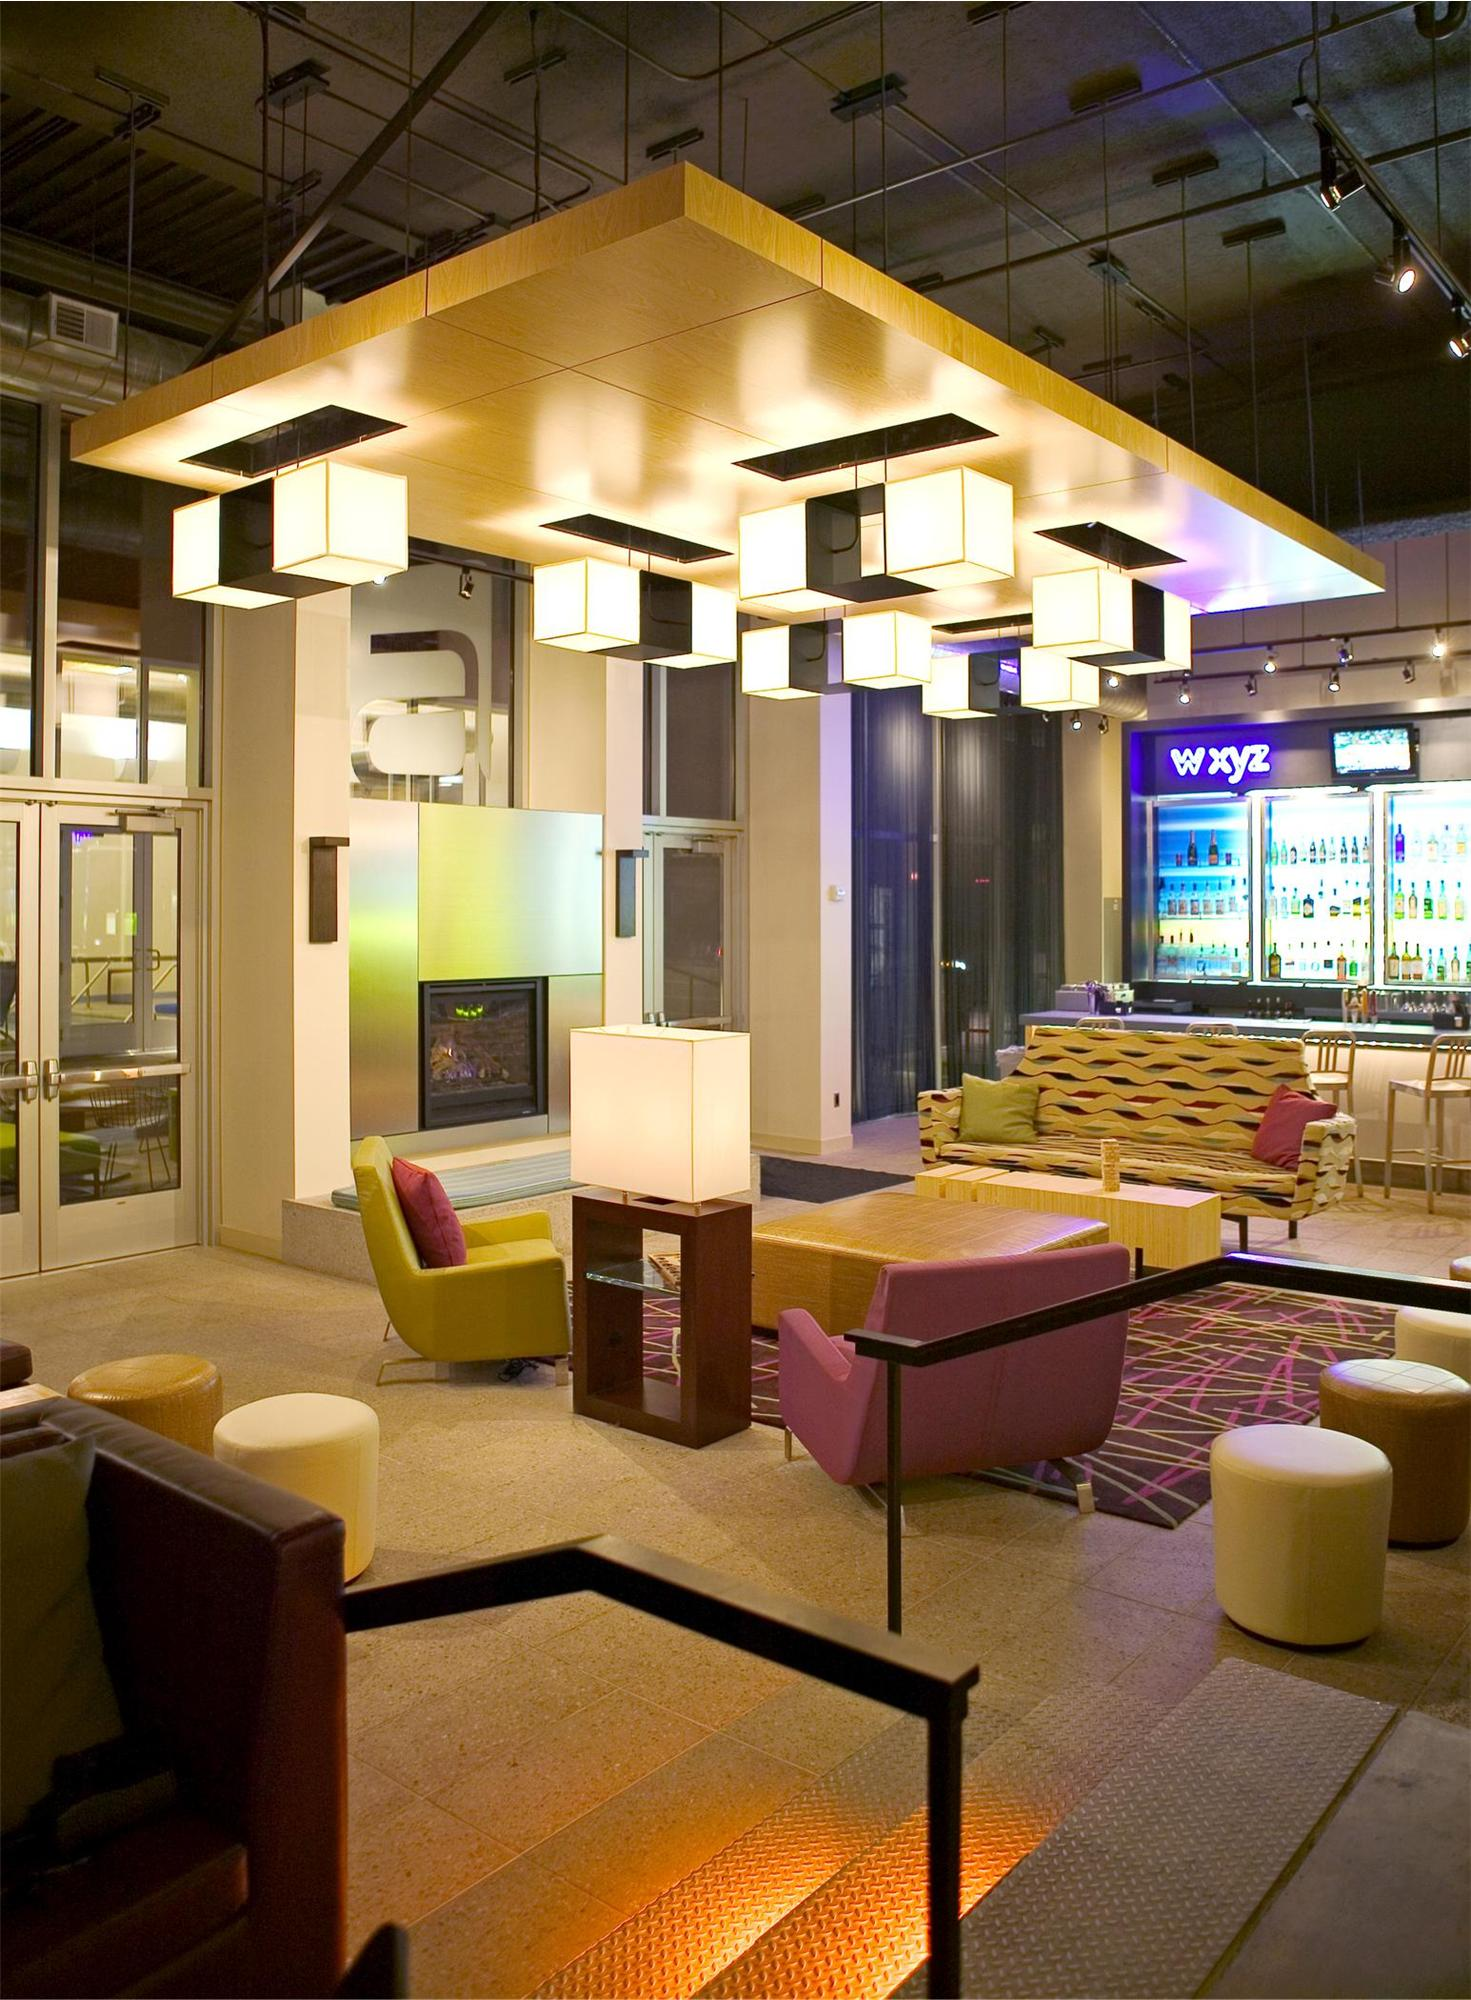 Seating area in the Aloft Hotel in Minneapolis, MN